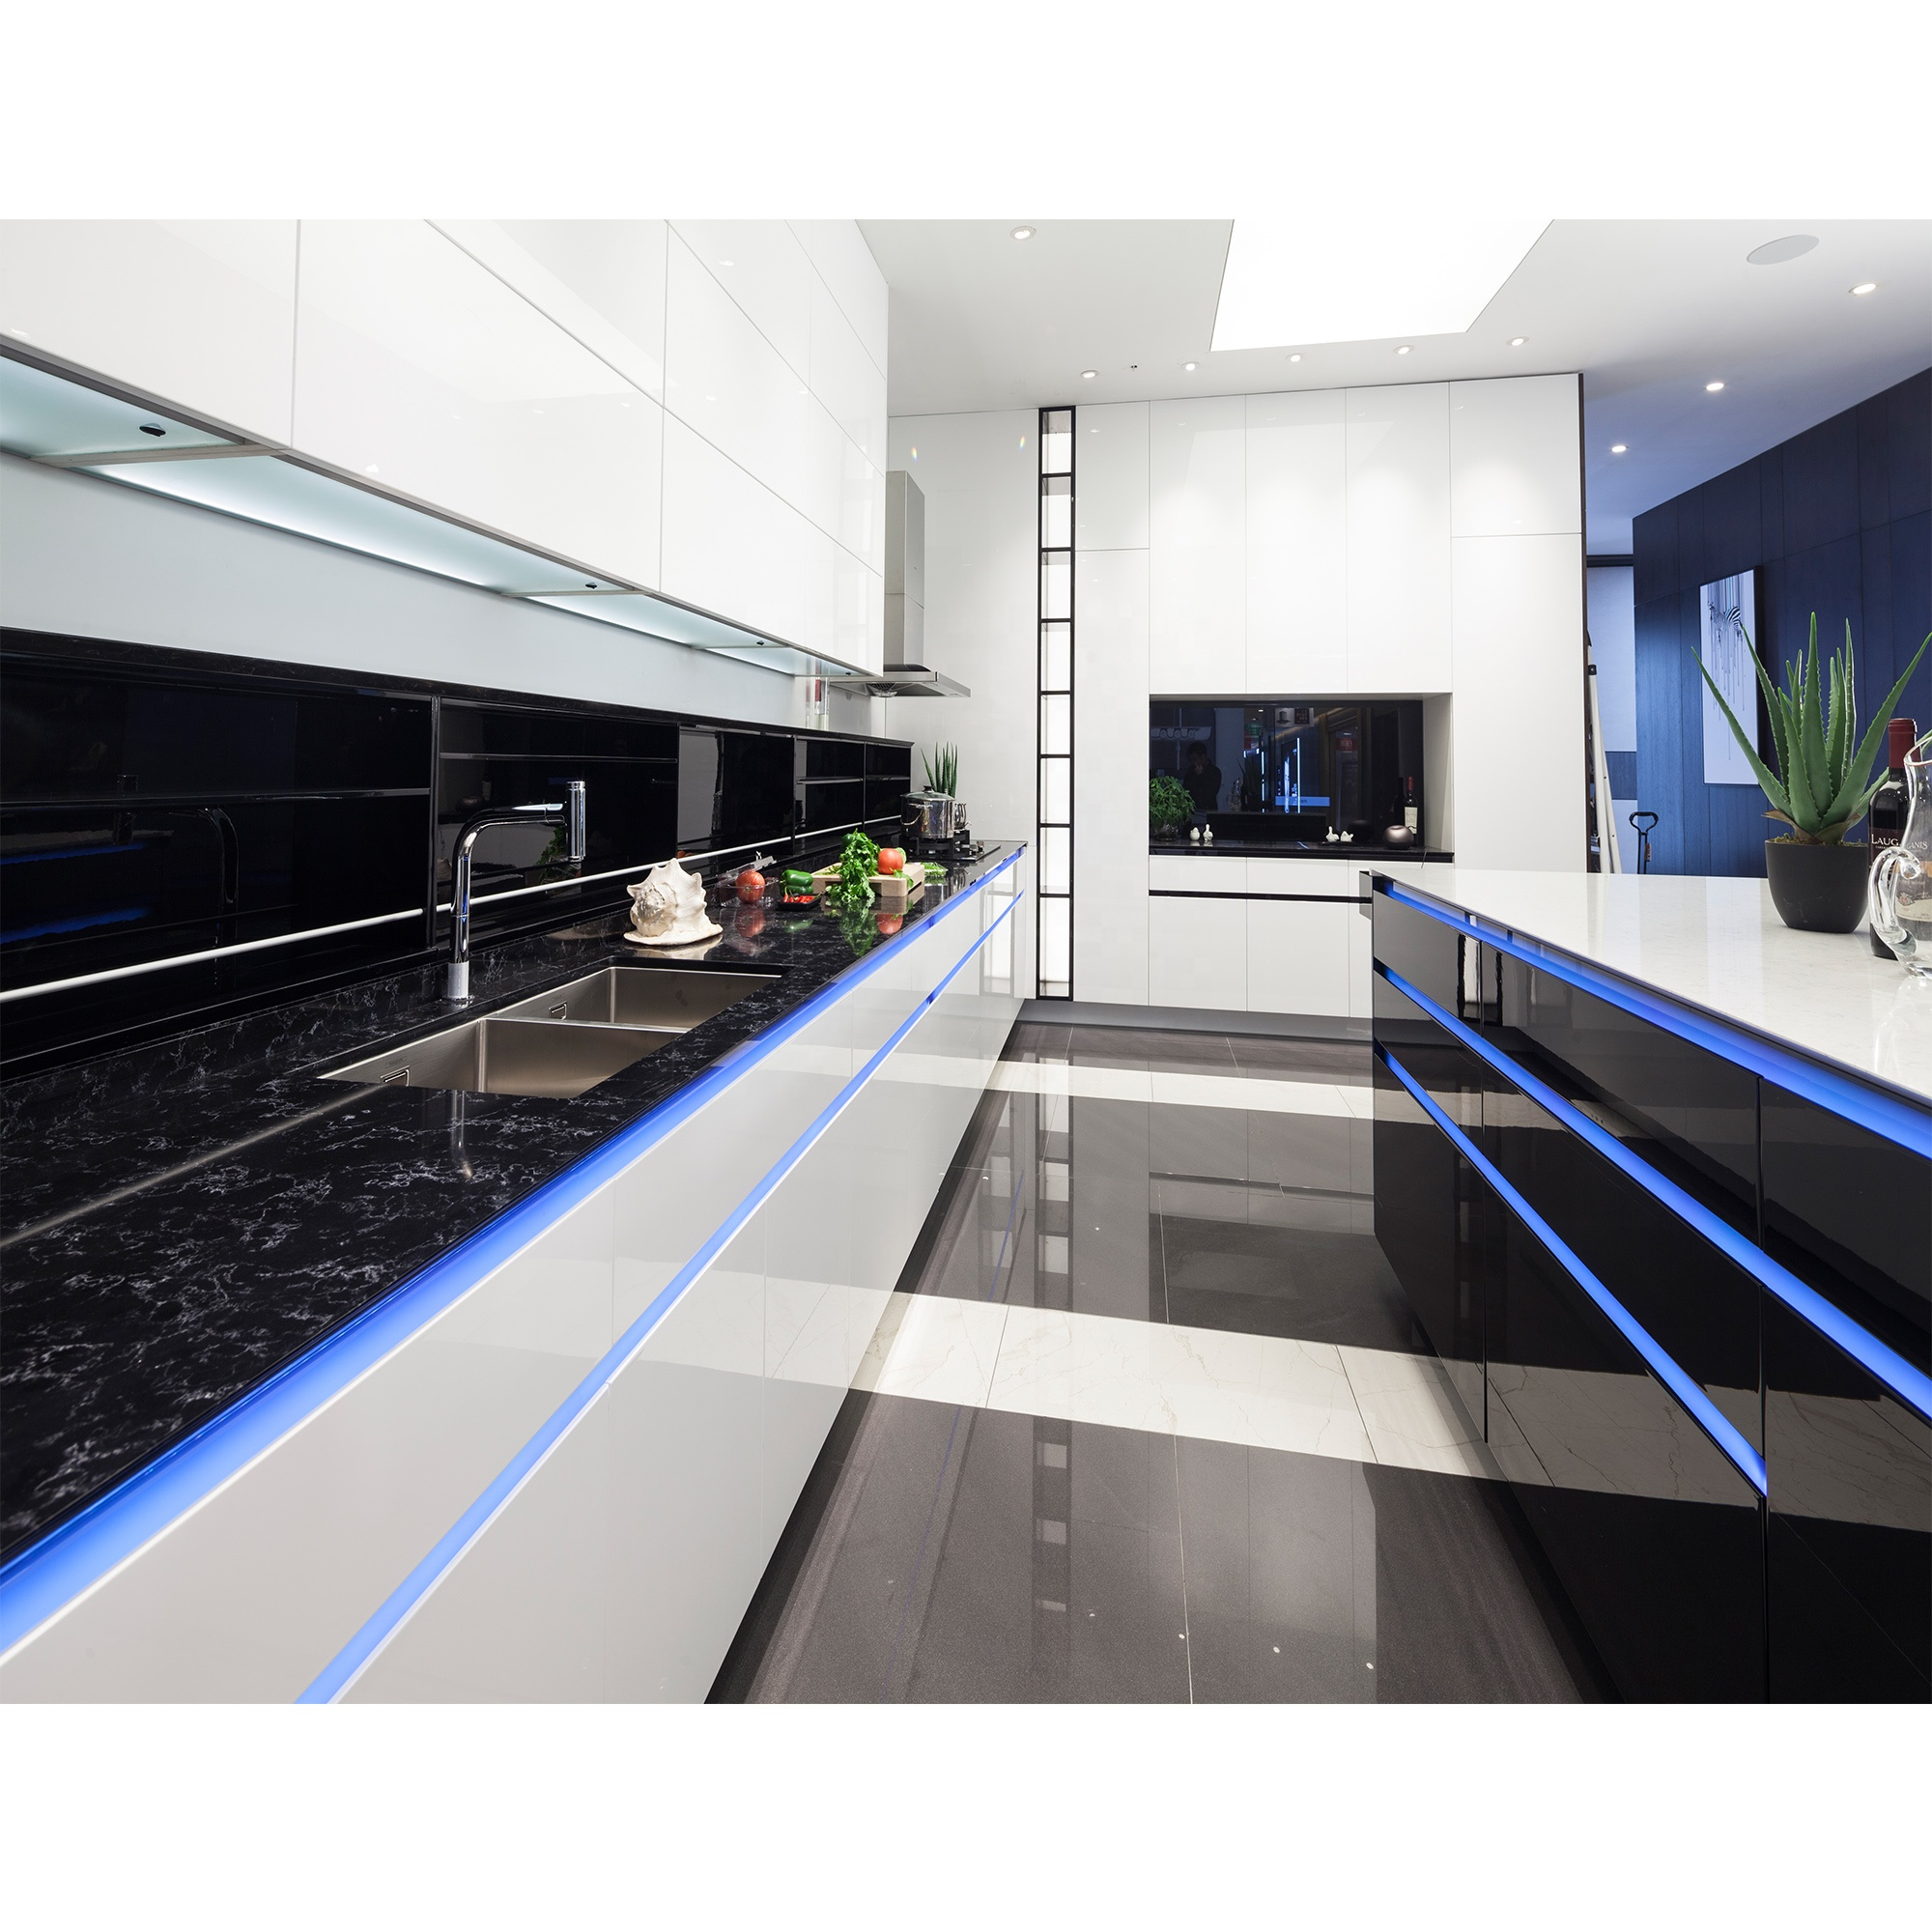 Nicocabinet Italian Design Modern Style Led Light White High Gloss 2 Pac Kitchen Cabinet Modular Kitchen Cupboards Design Buy French Kitchen Import Kitchen Cabinet Fitted Kitchens China Kitchens Flat Pack Cabinet